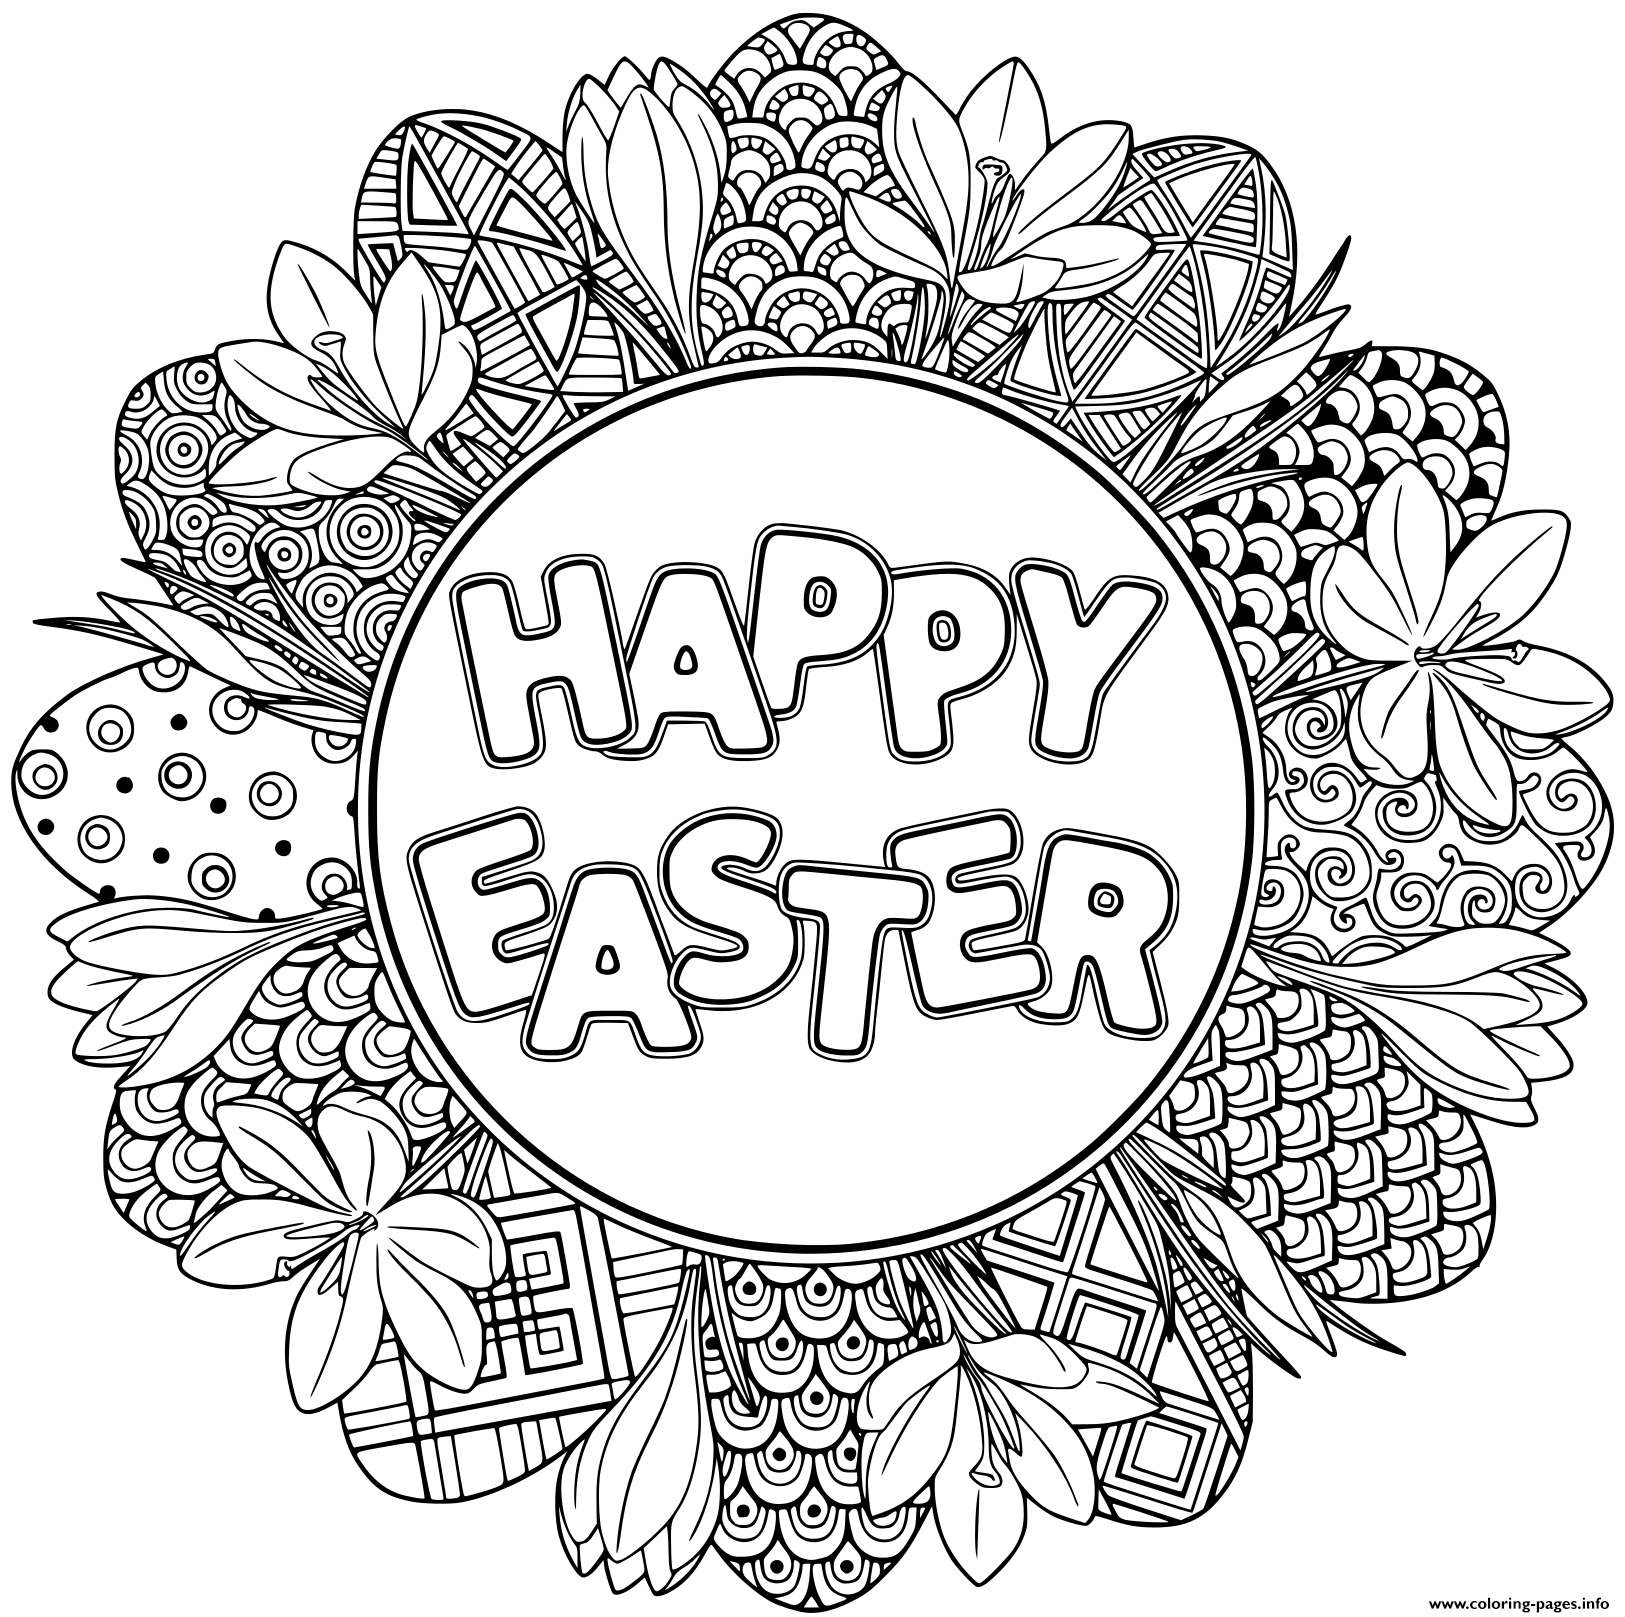 Happy Easter Easter Mandala Coloring Pages Printable